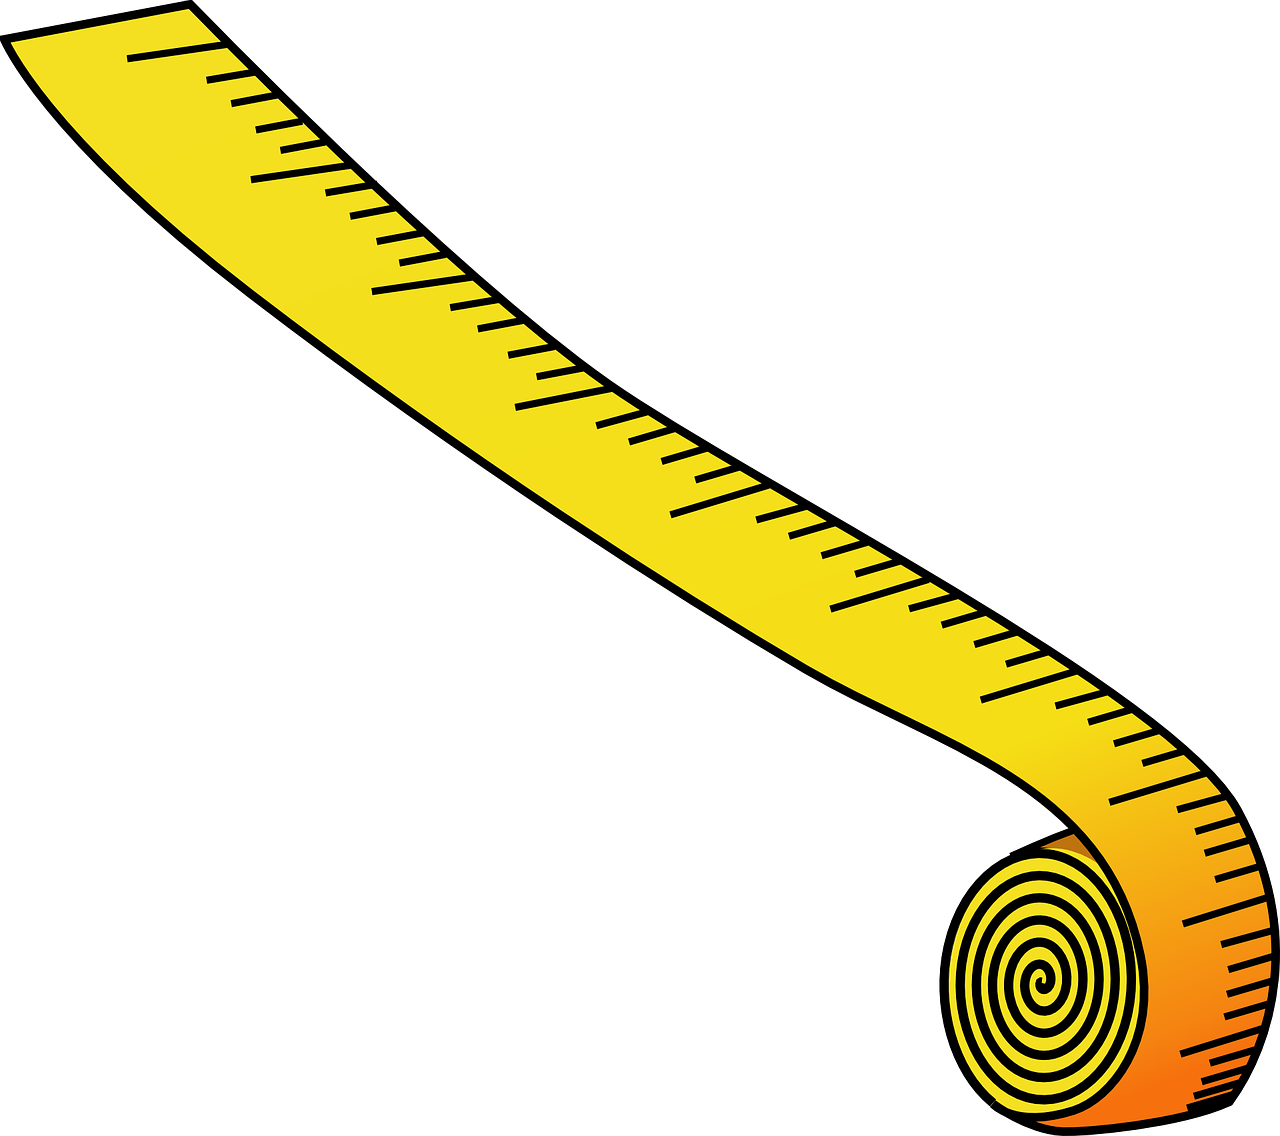 measuring-tape-29455_1280